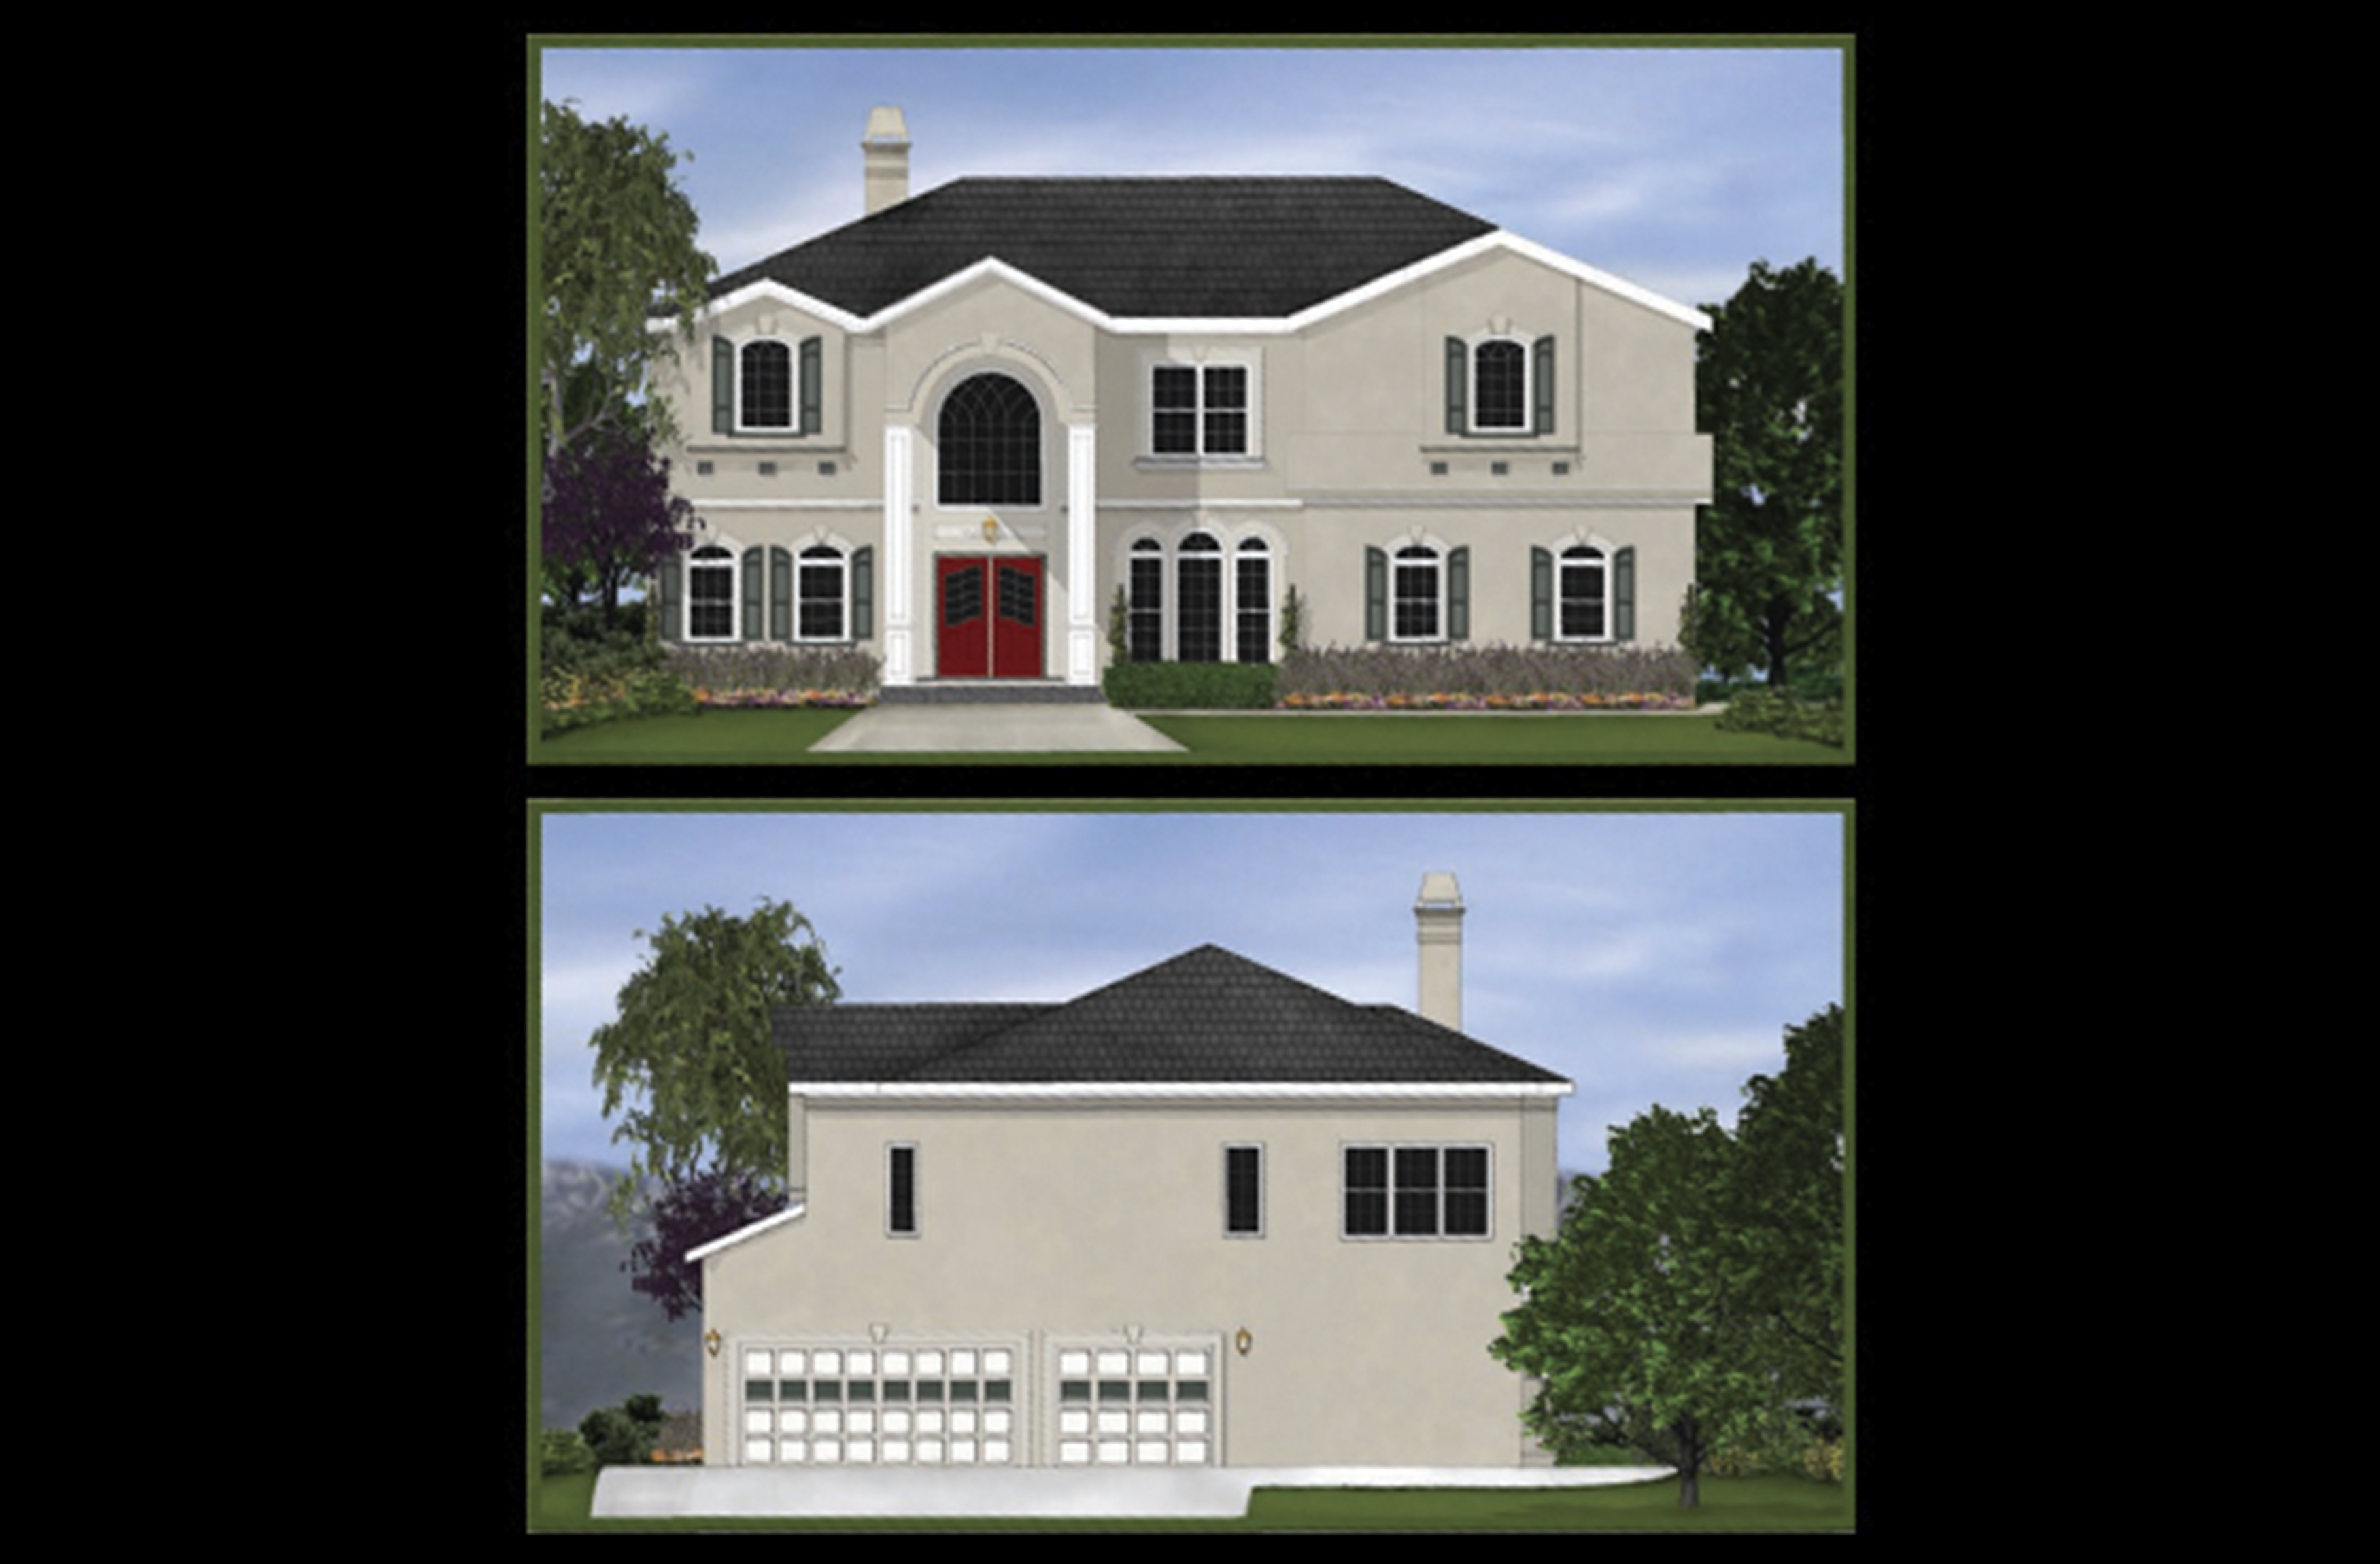 Illustration | Loera Homes - Architectural Rendering 2